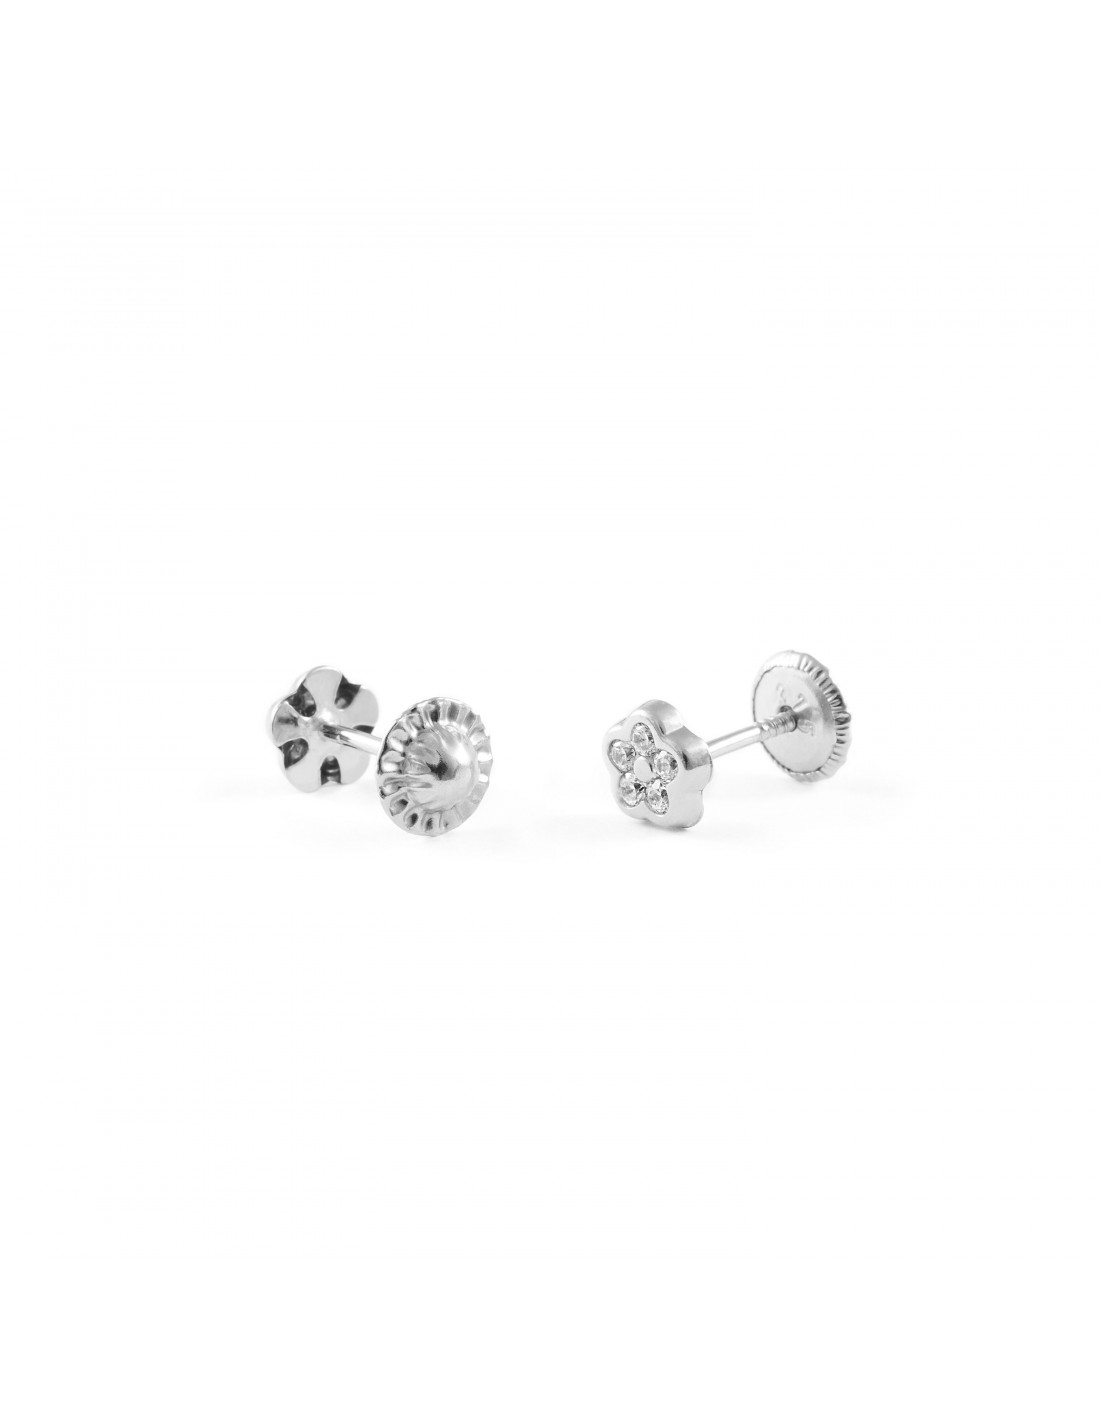 boucles d 39 oreilles enfant fleur avec zircon or blanc 9 carats. Black Bedroom Furniture Sets. Home Design Ideas